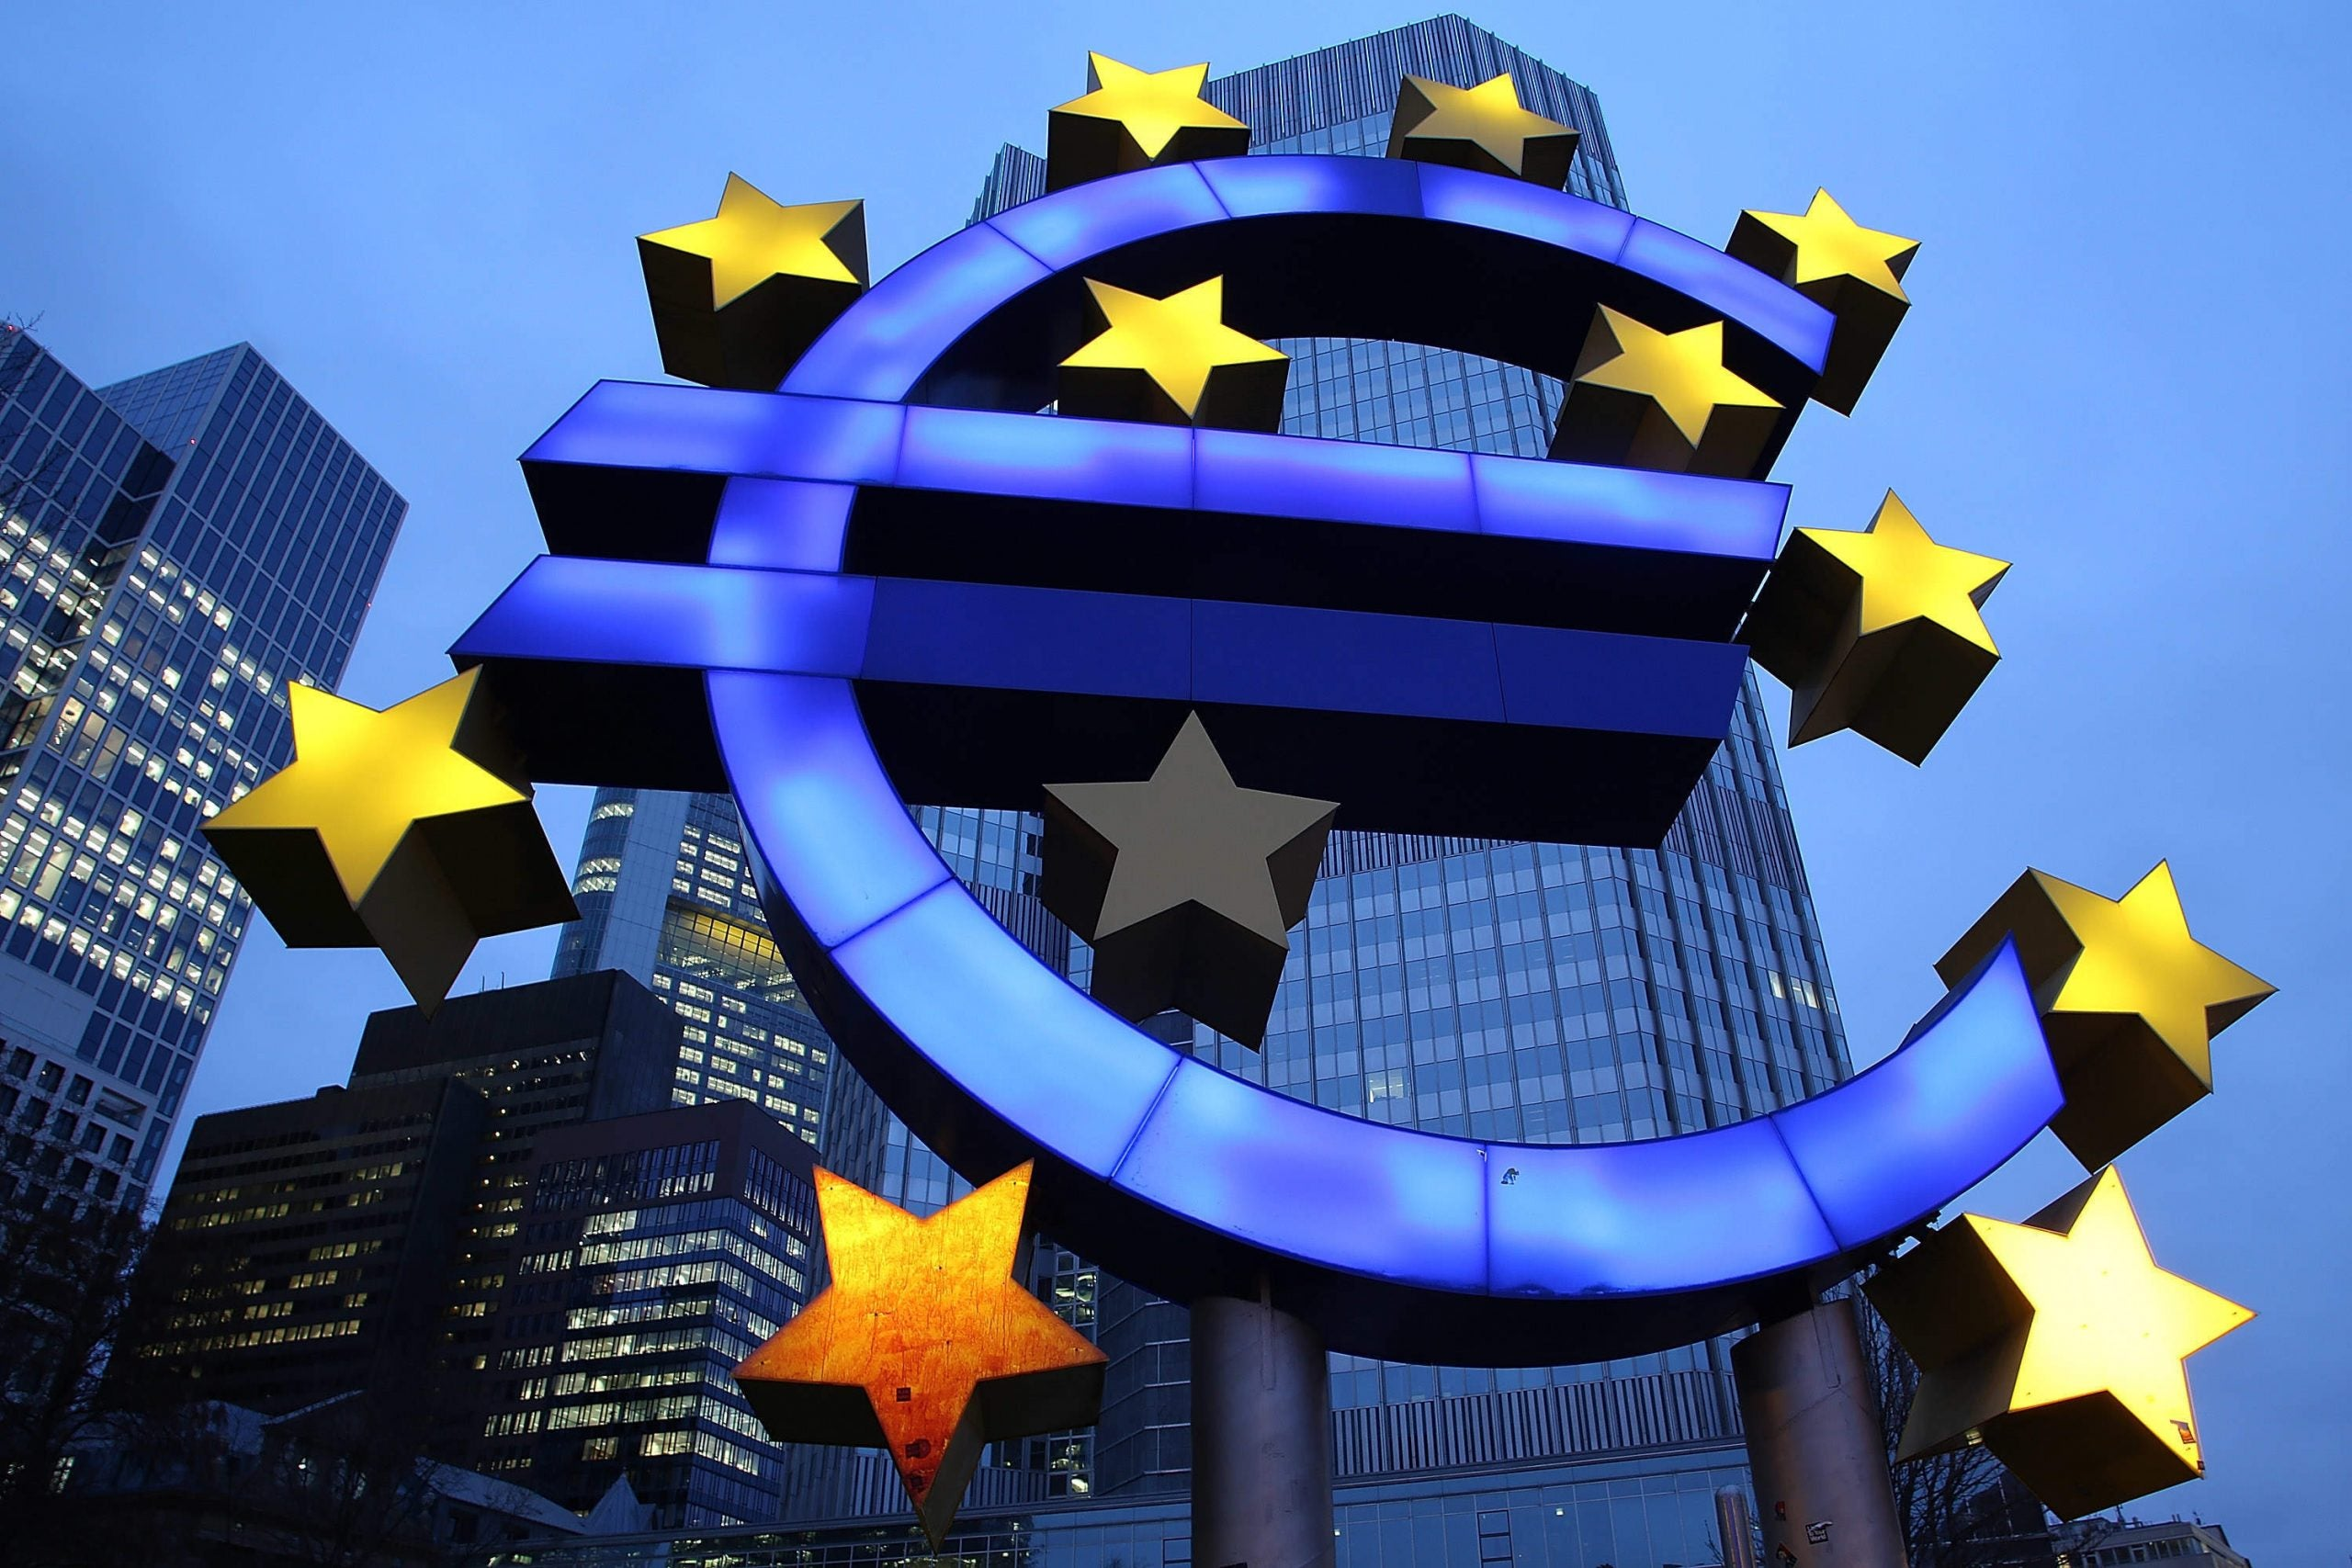 A knot in the purse strings: where the European monetary union went wrong